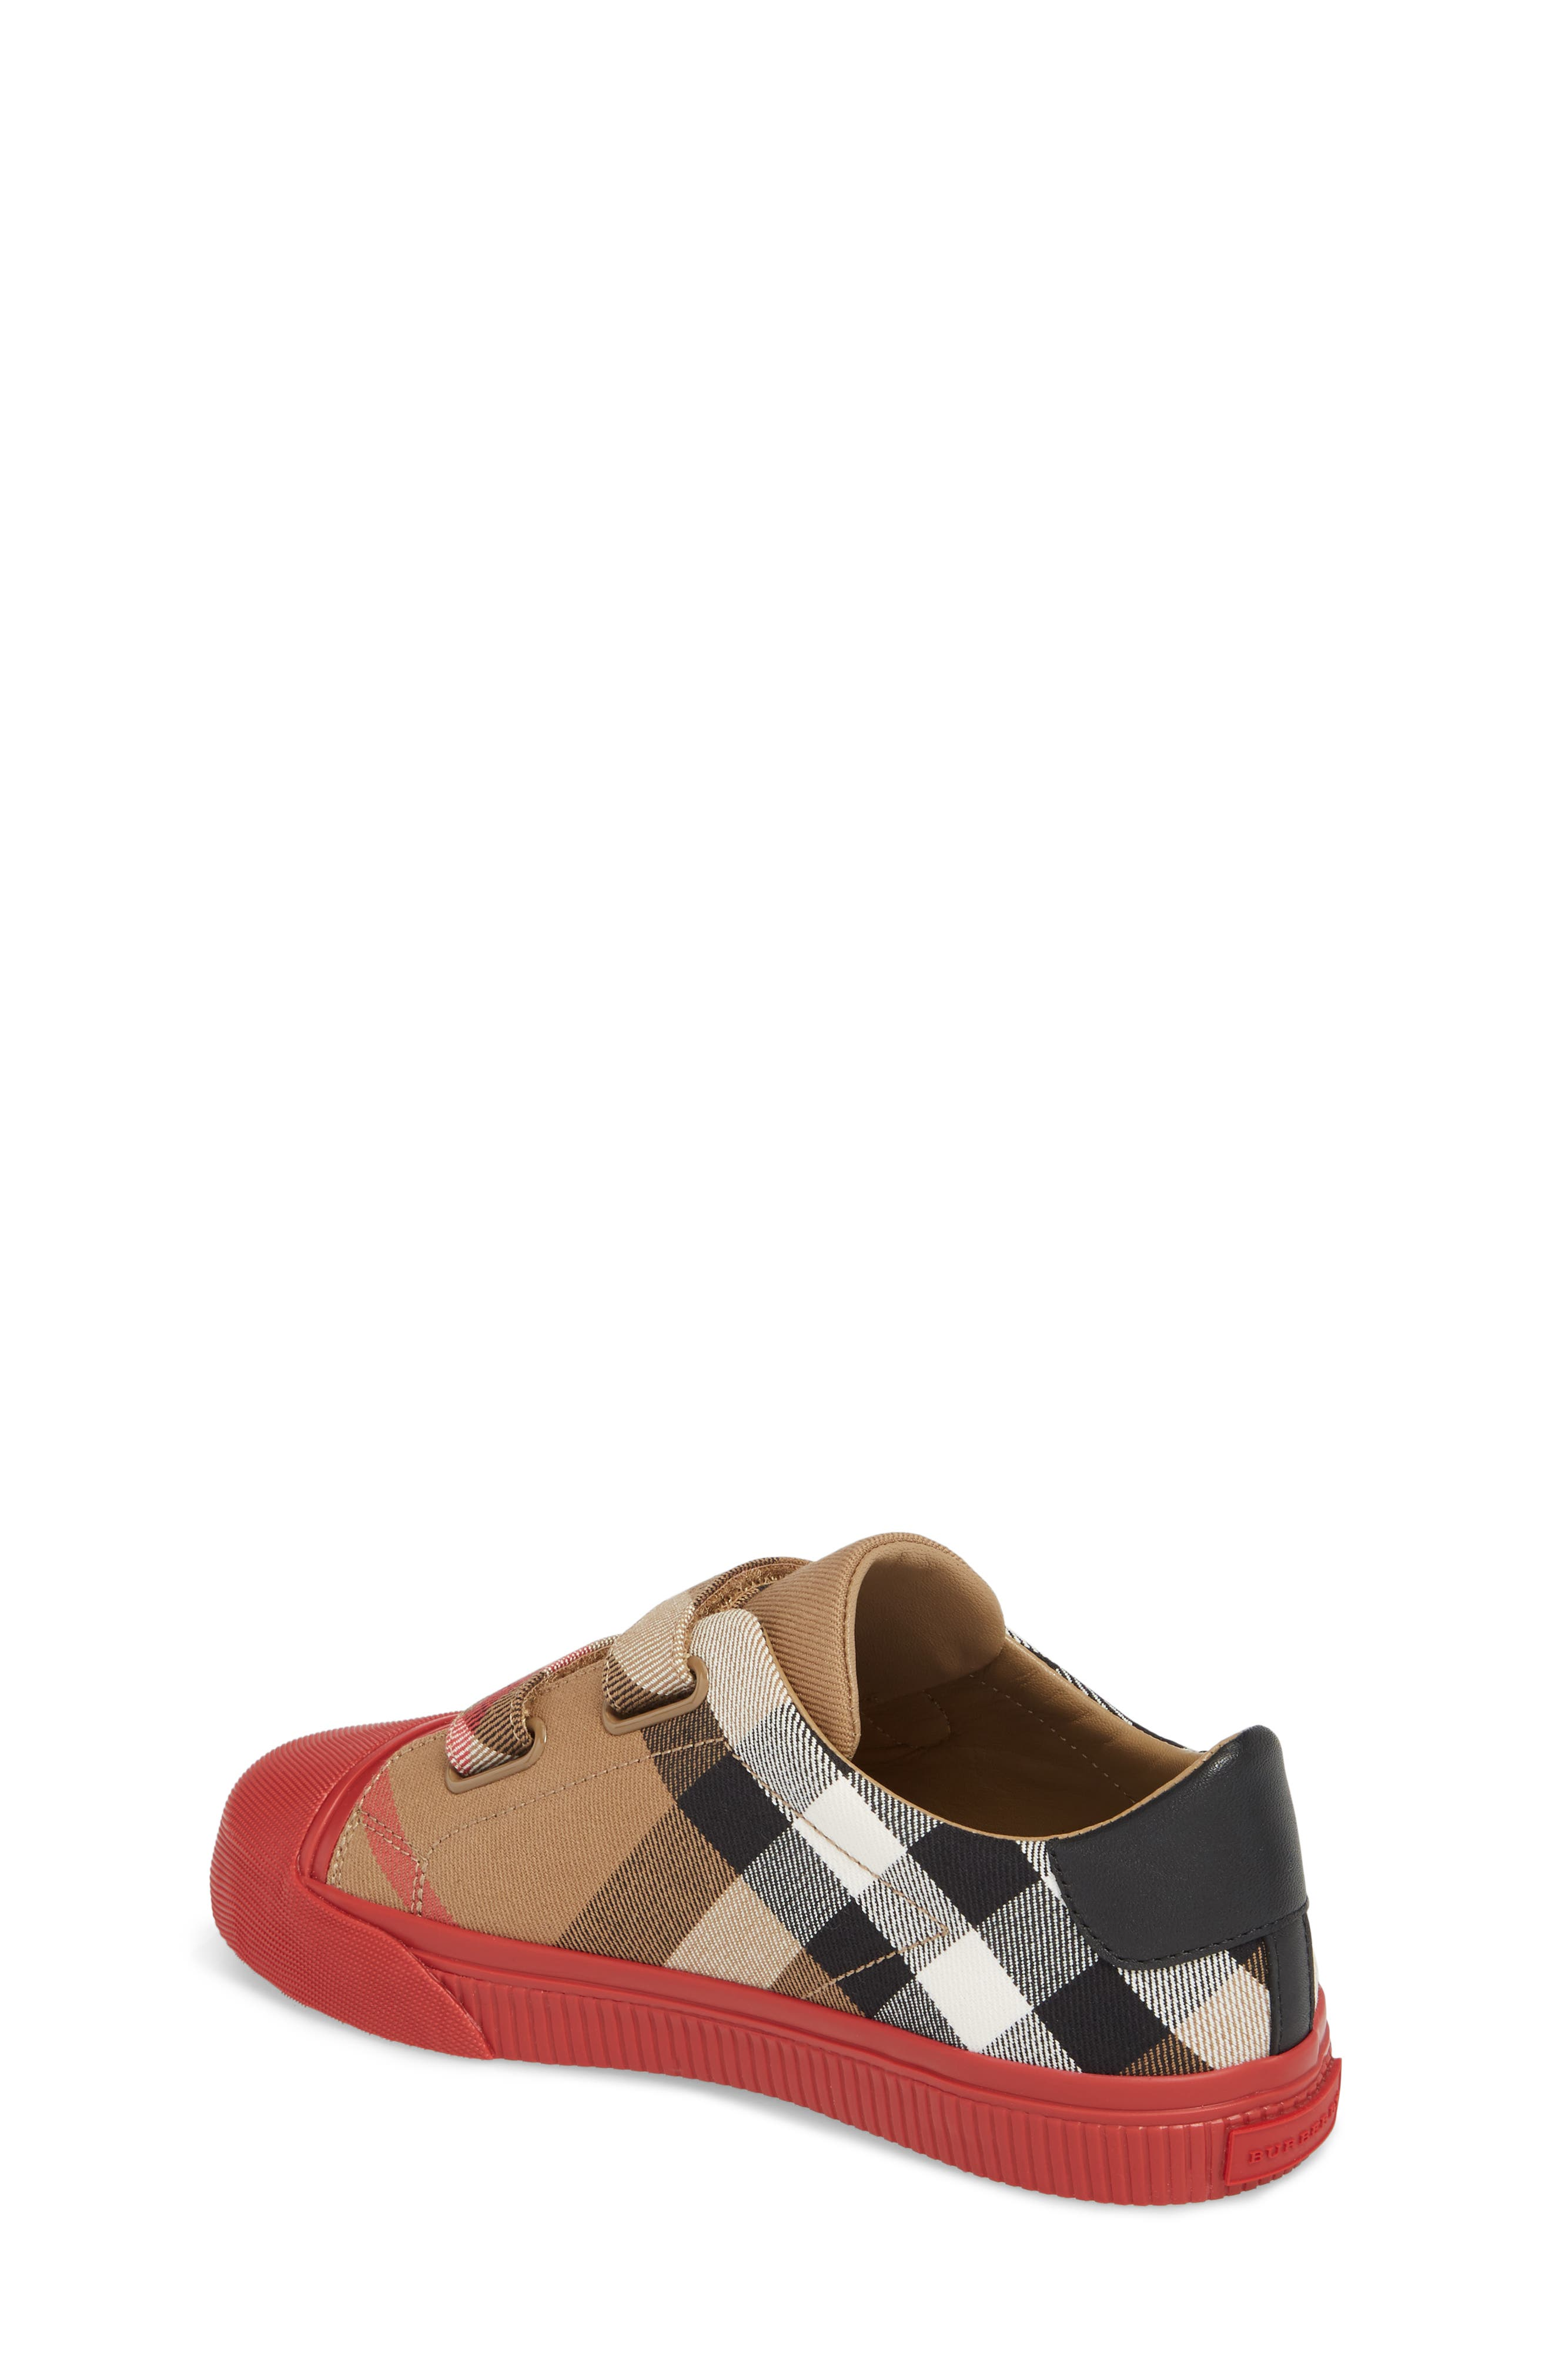 Belside Sneaker,                             Alternate thumbnail 2, color,                             Classic/ Parade Red